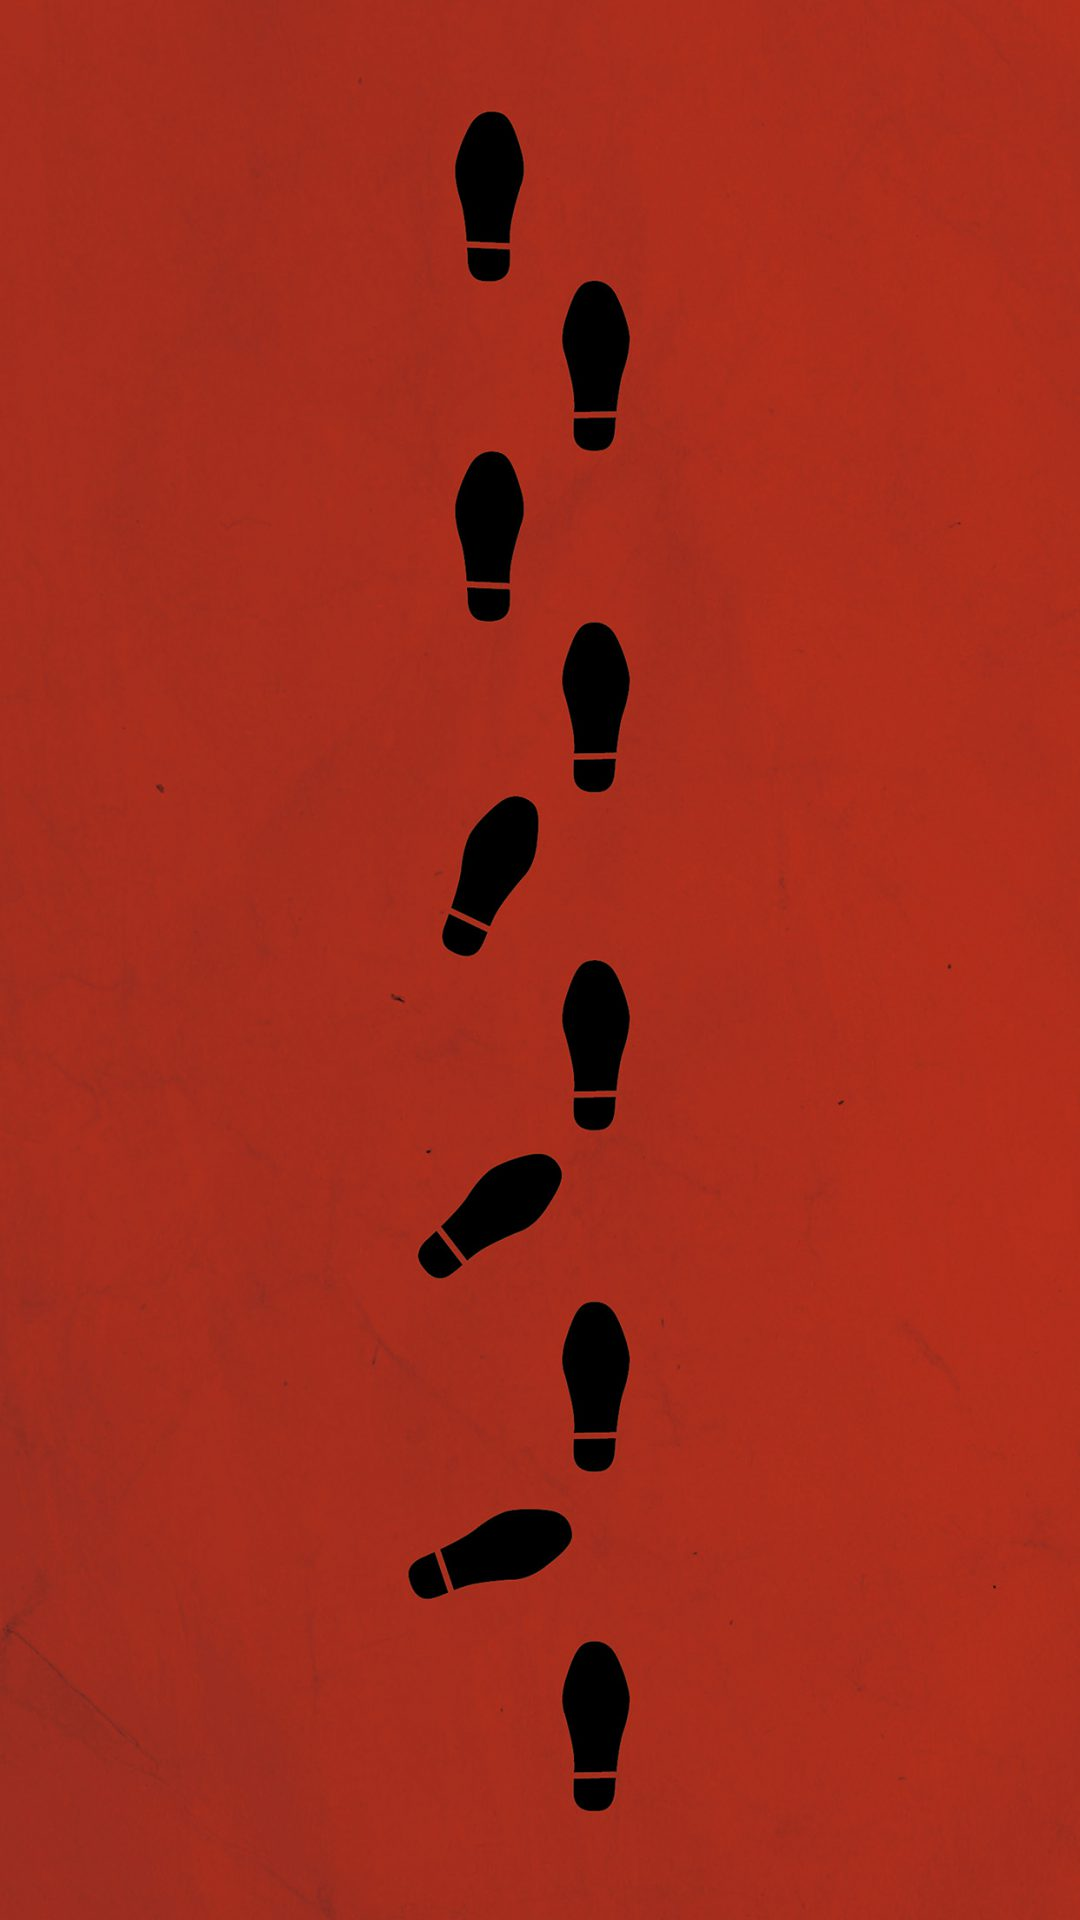 Minimal Usual Suspects Film Poster Art Illust